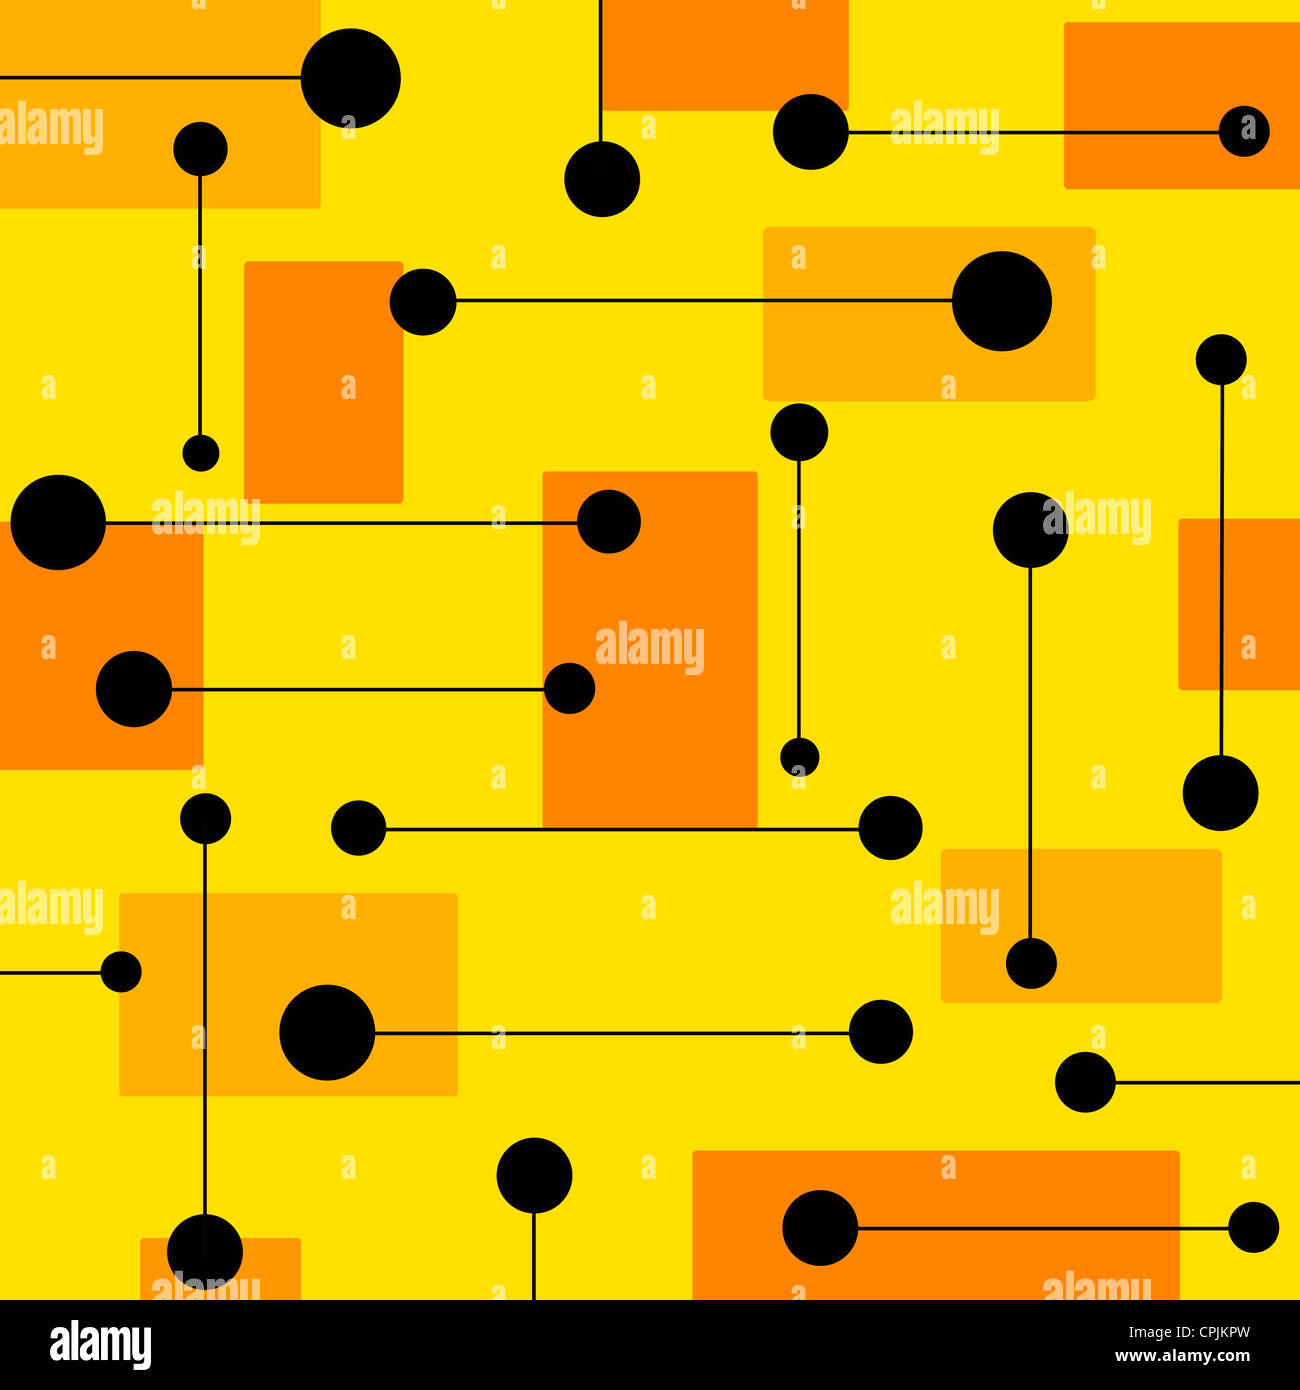 Retro geometrical shapes pattern on yellow and orange colors Stock Photo